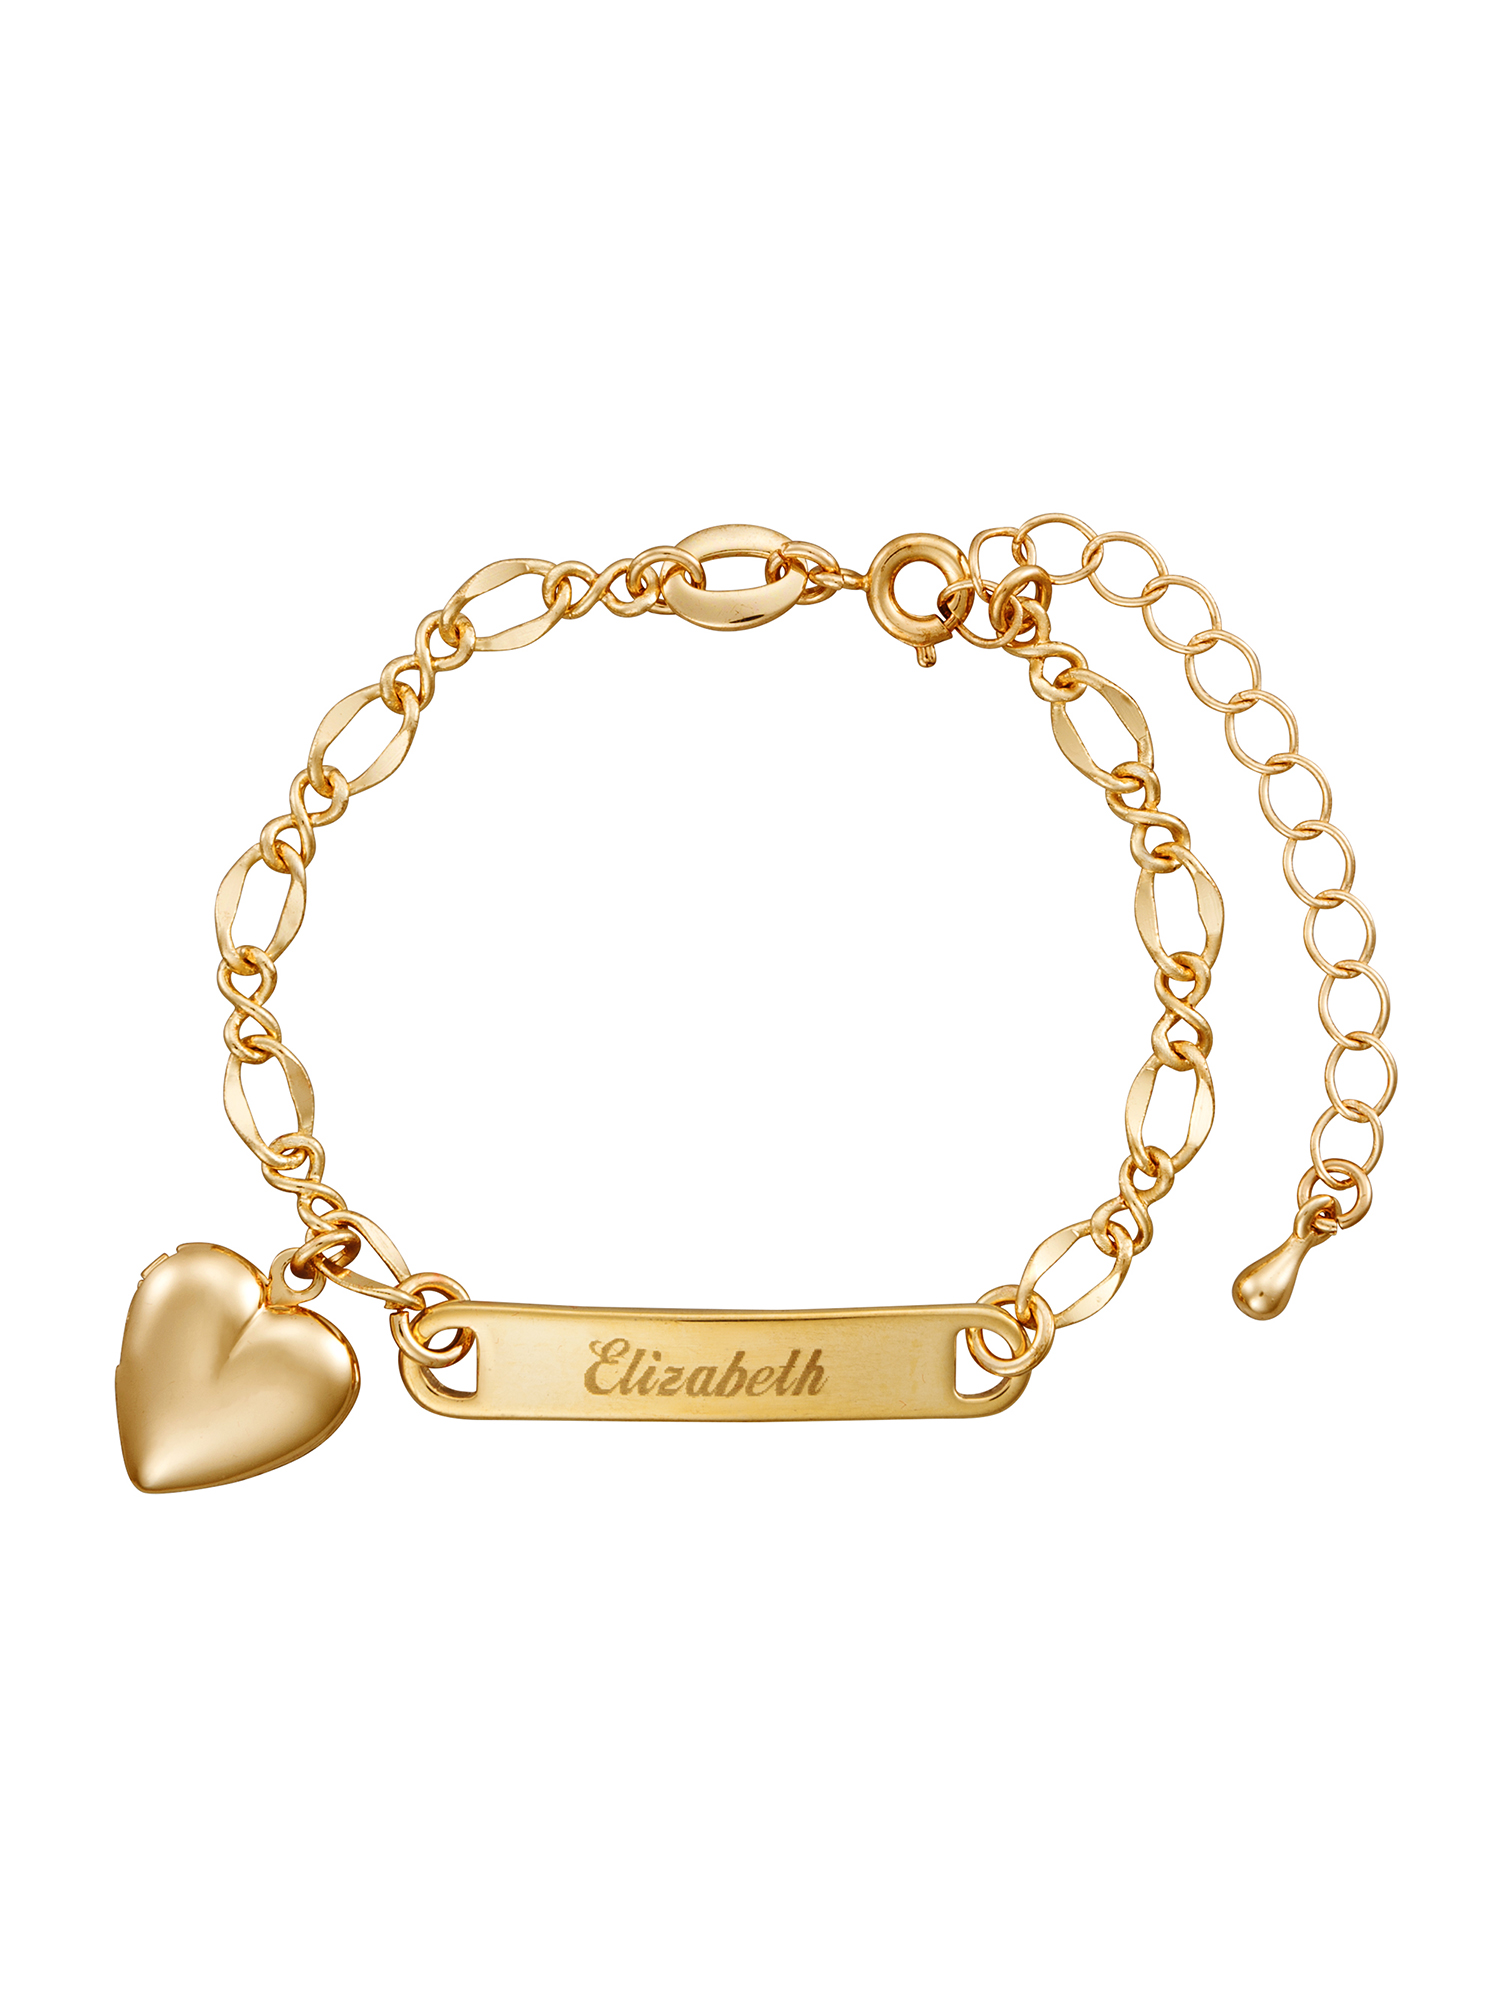 Personalized Gold-Tone Girls' Heart Charm Name Bracelet